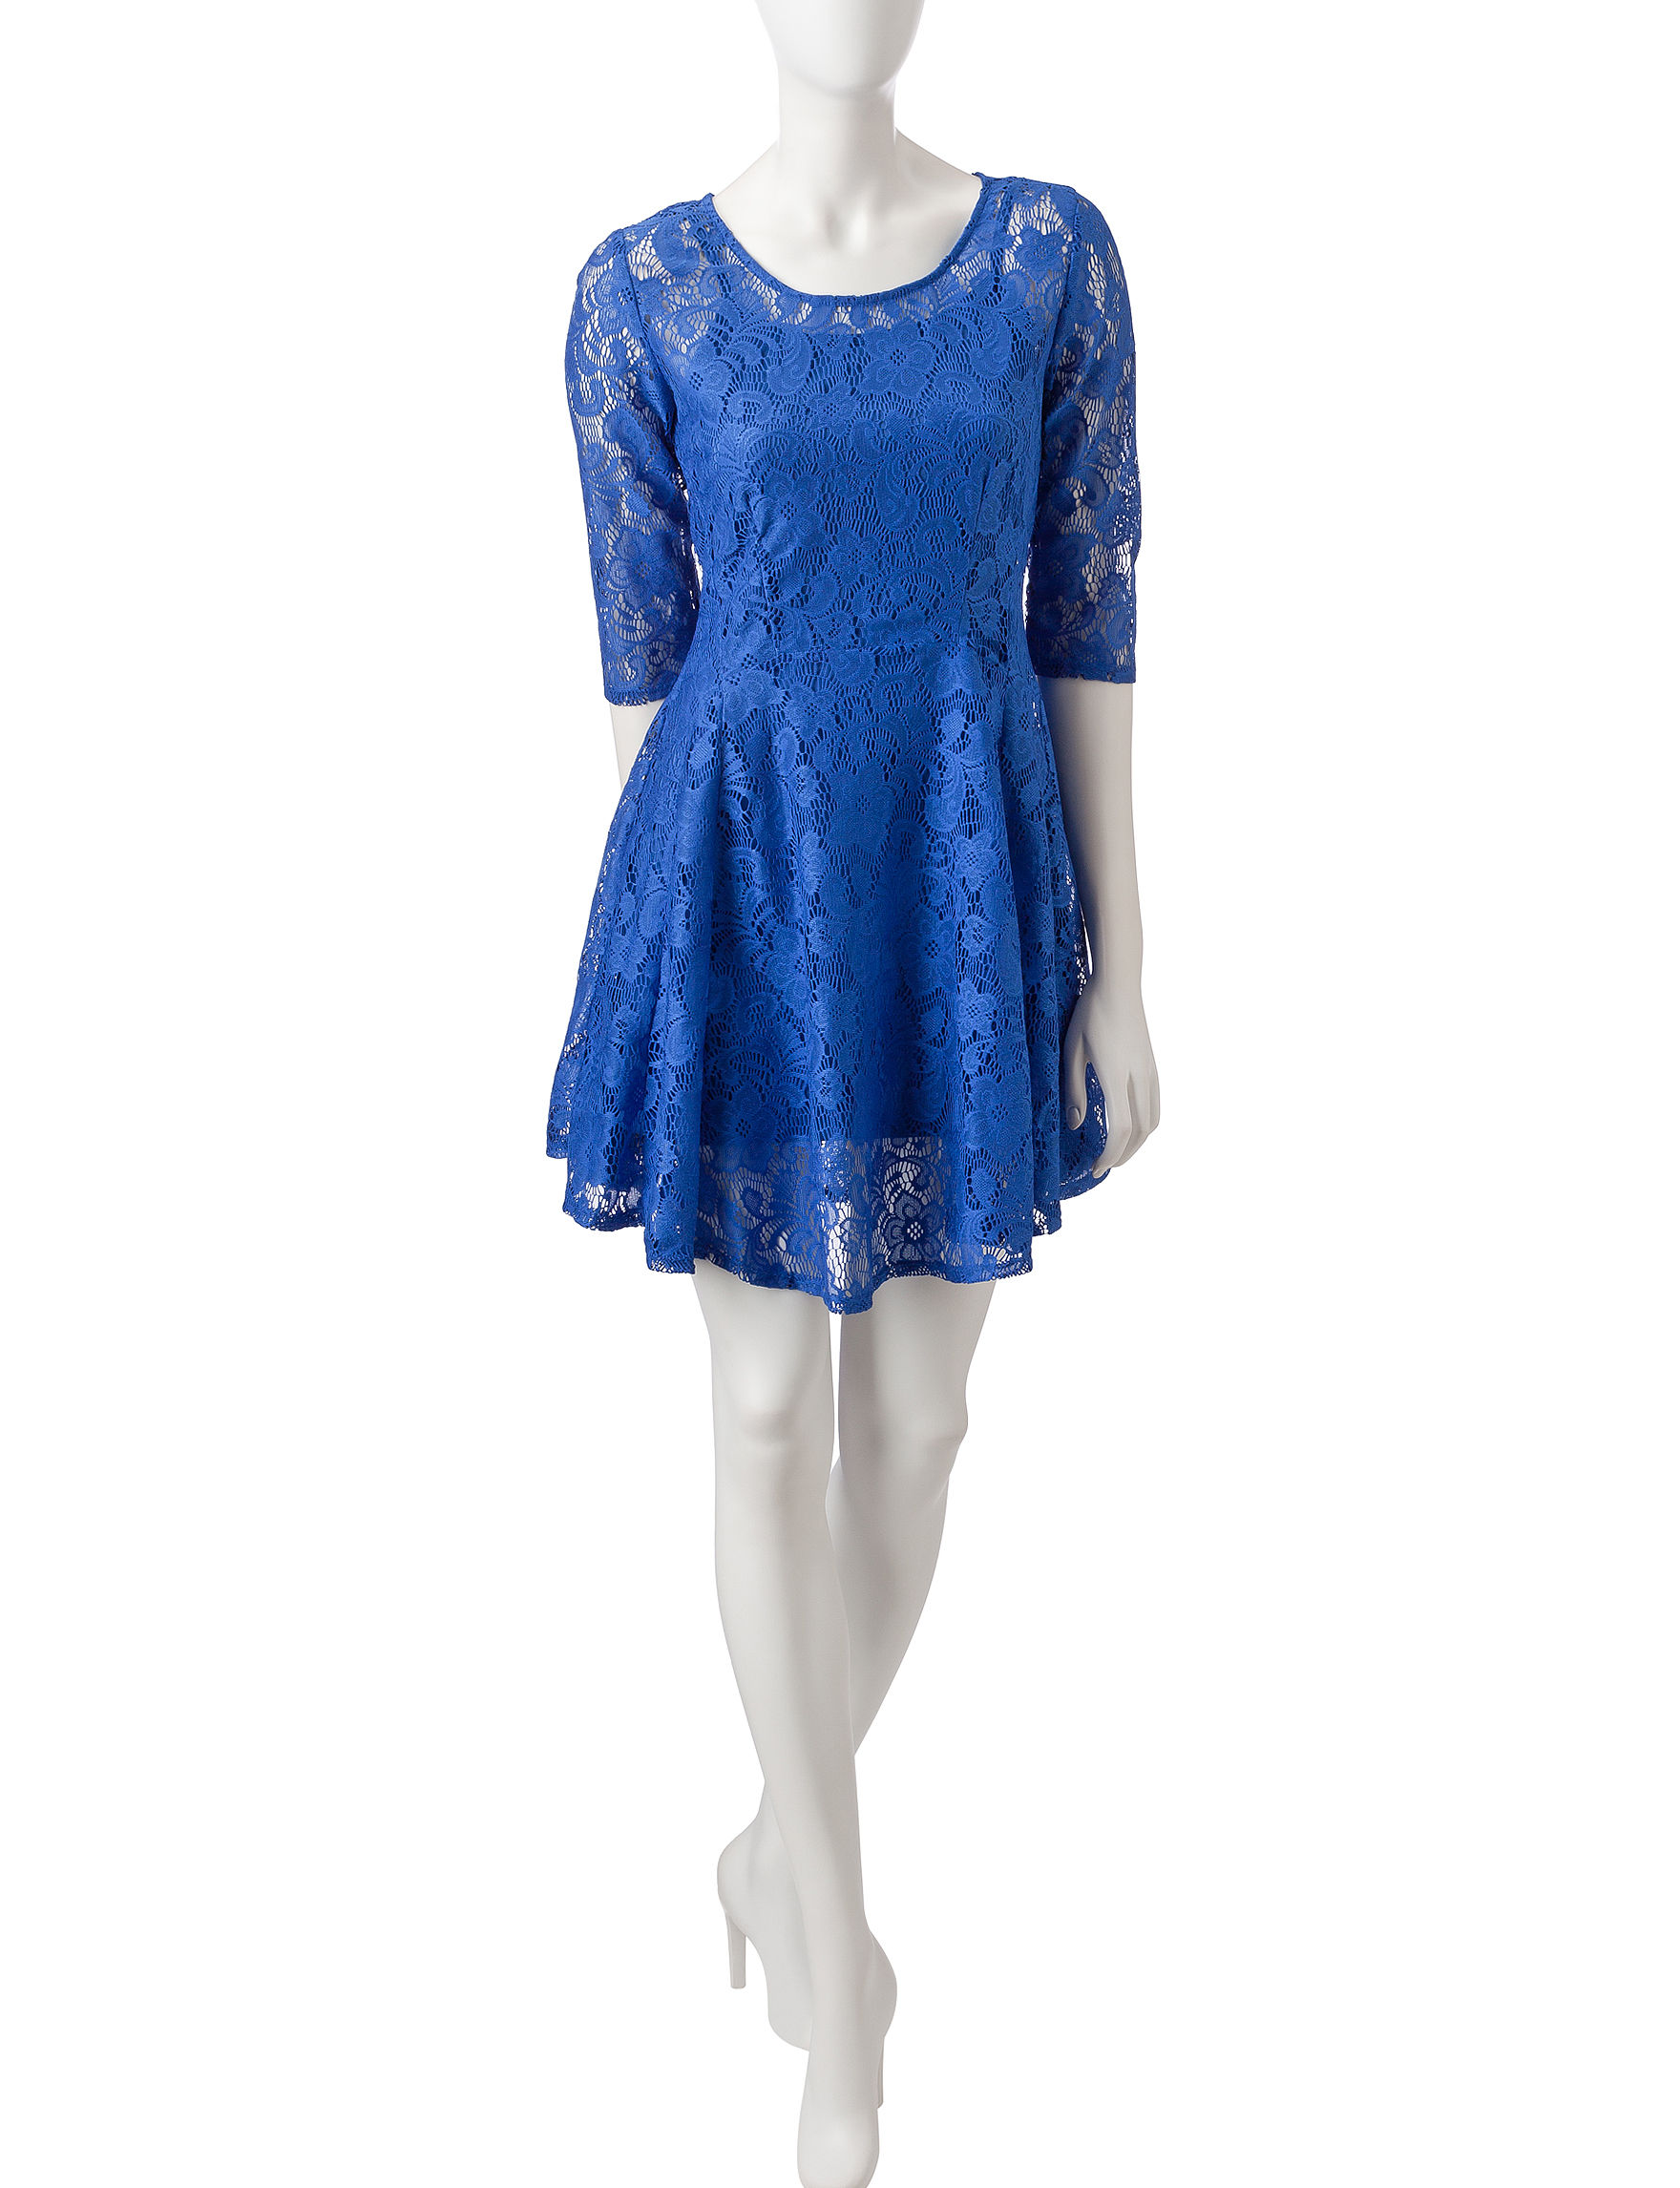 BeBop Cobalt Blue Everyday & Casual Fit & Flare Dresses